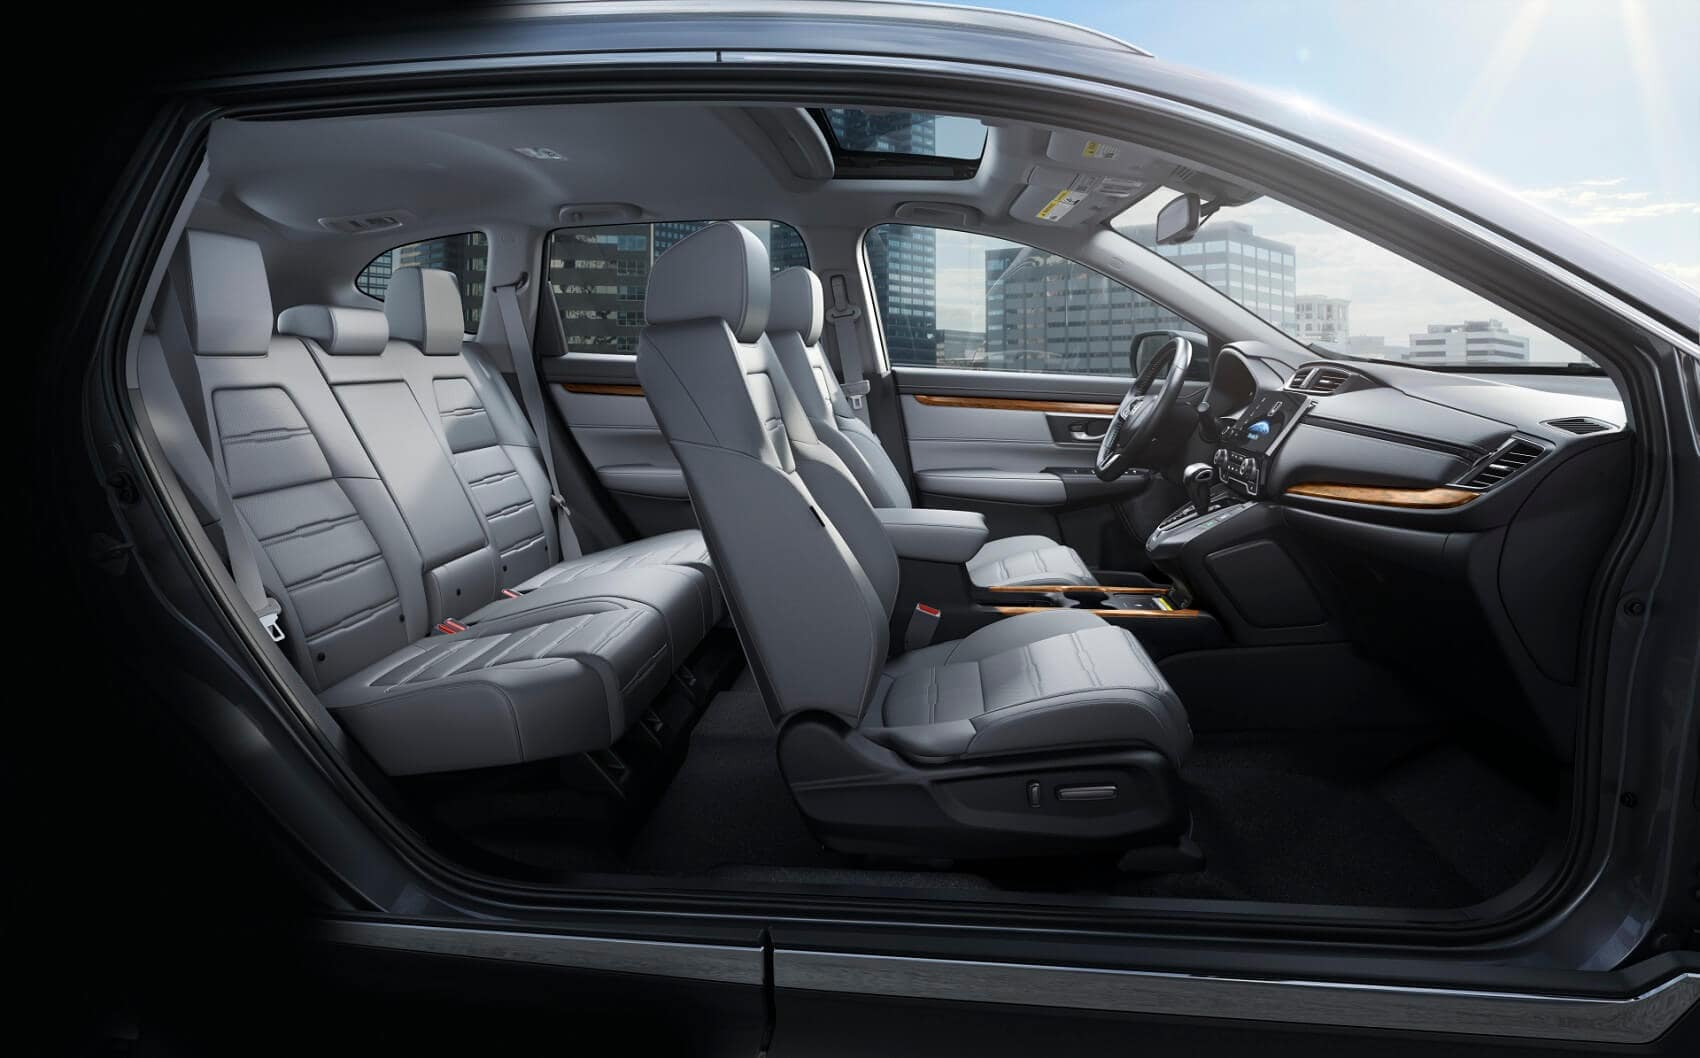 2020 Honda CR-V Interior Space